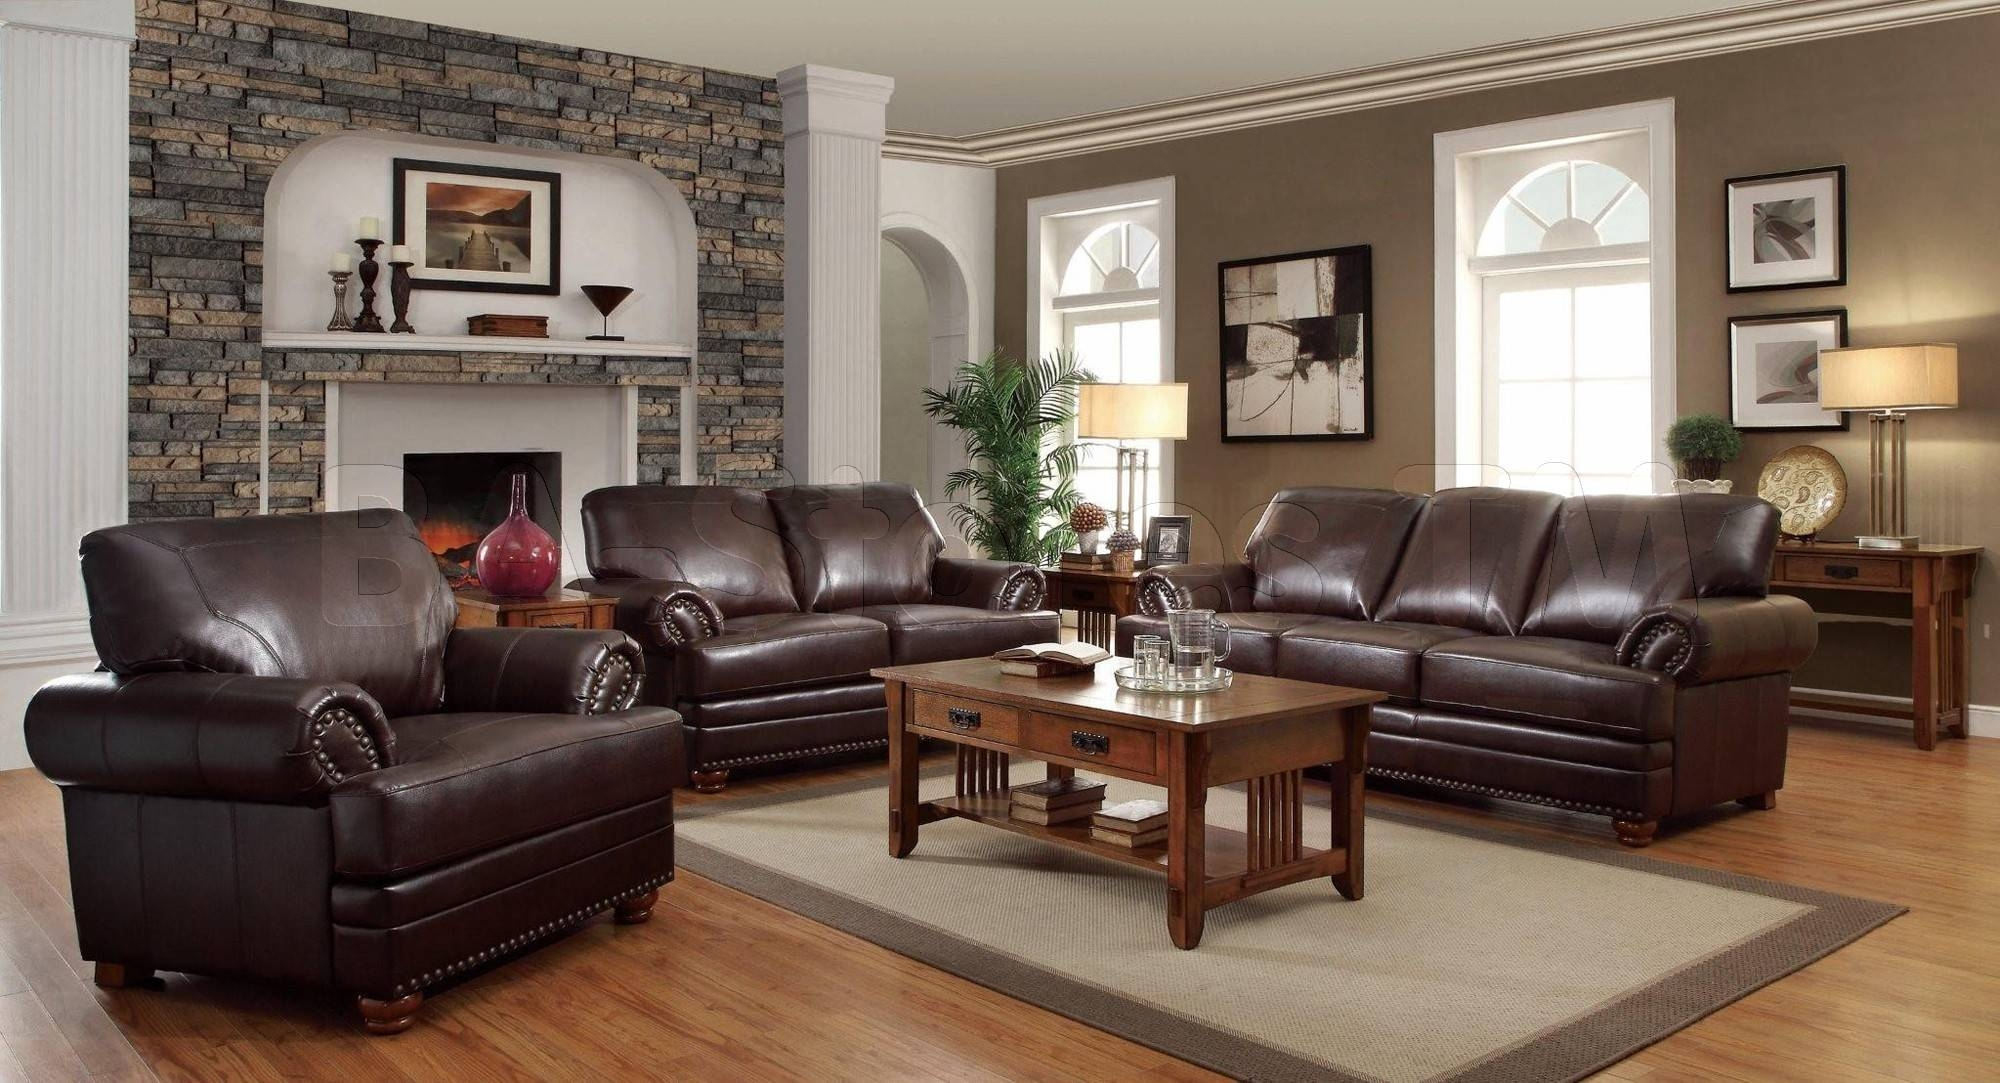 How To Decorate A Living Room With Dark Brown Leather Couches regarding Living Room With Brown Sofas (Image 9 of 15)